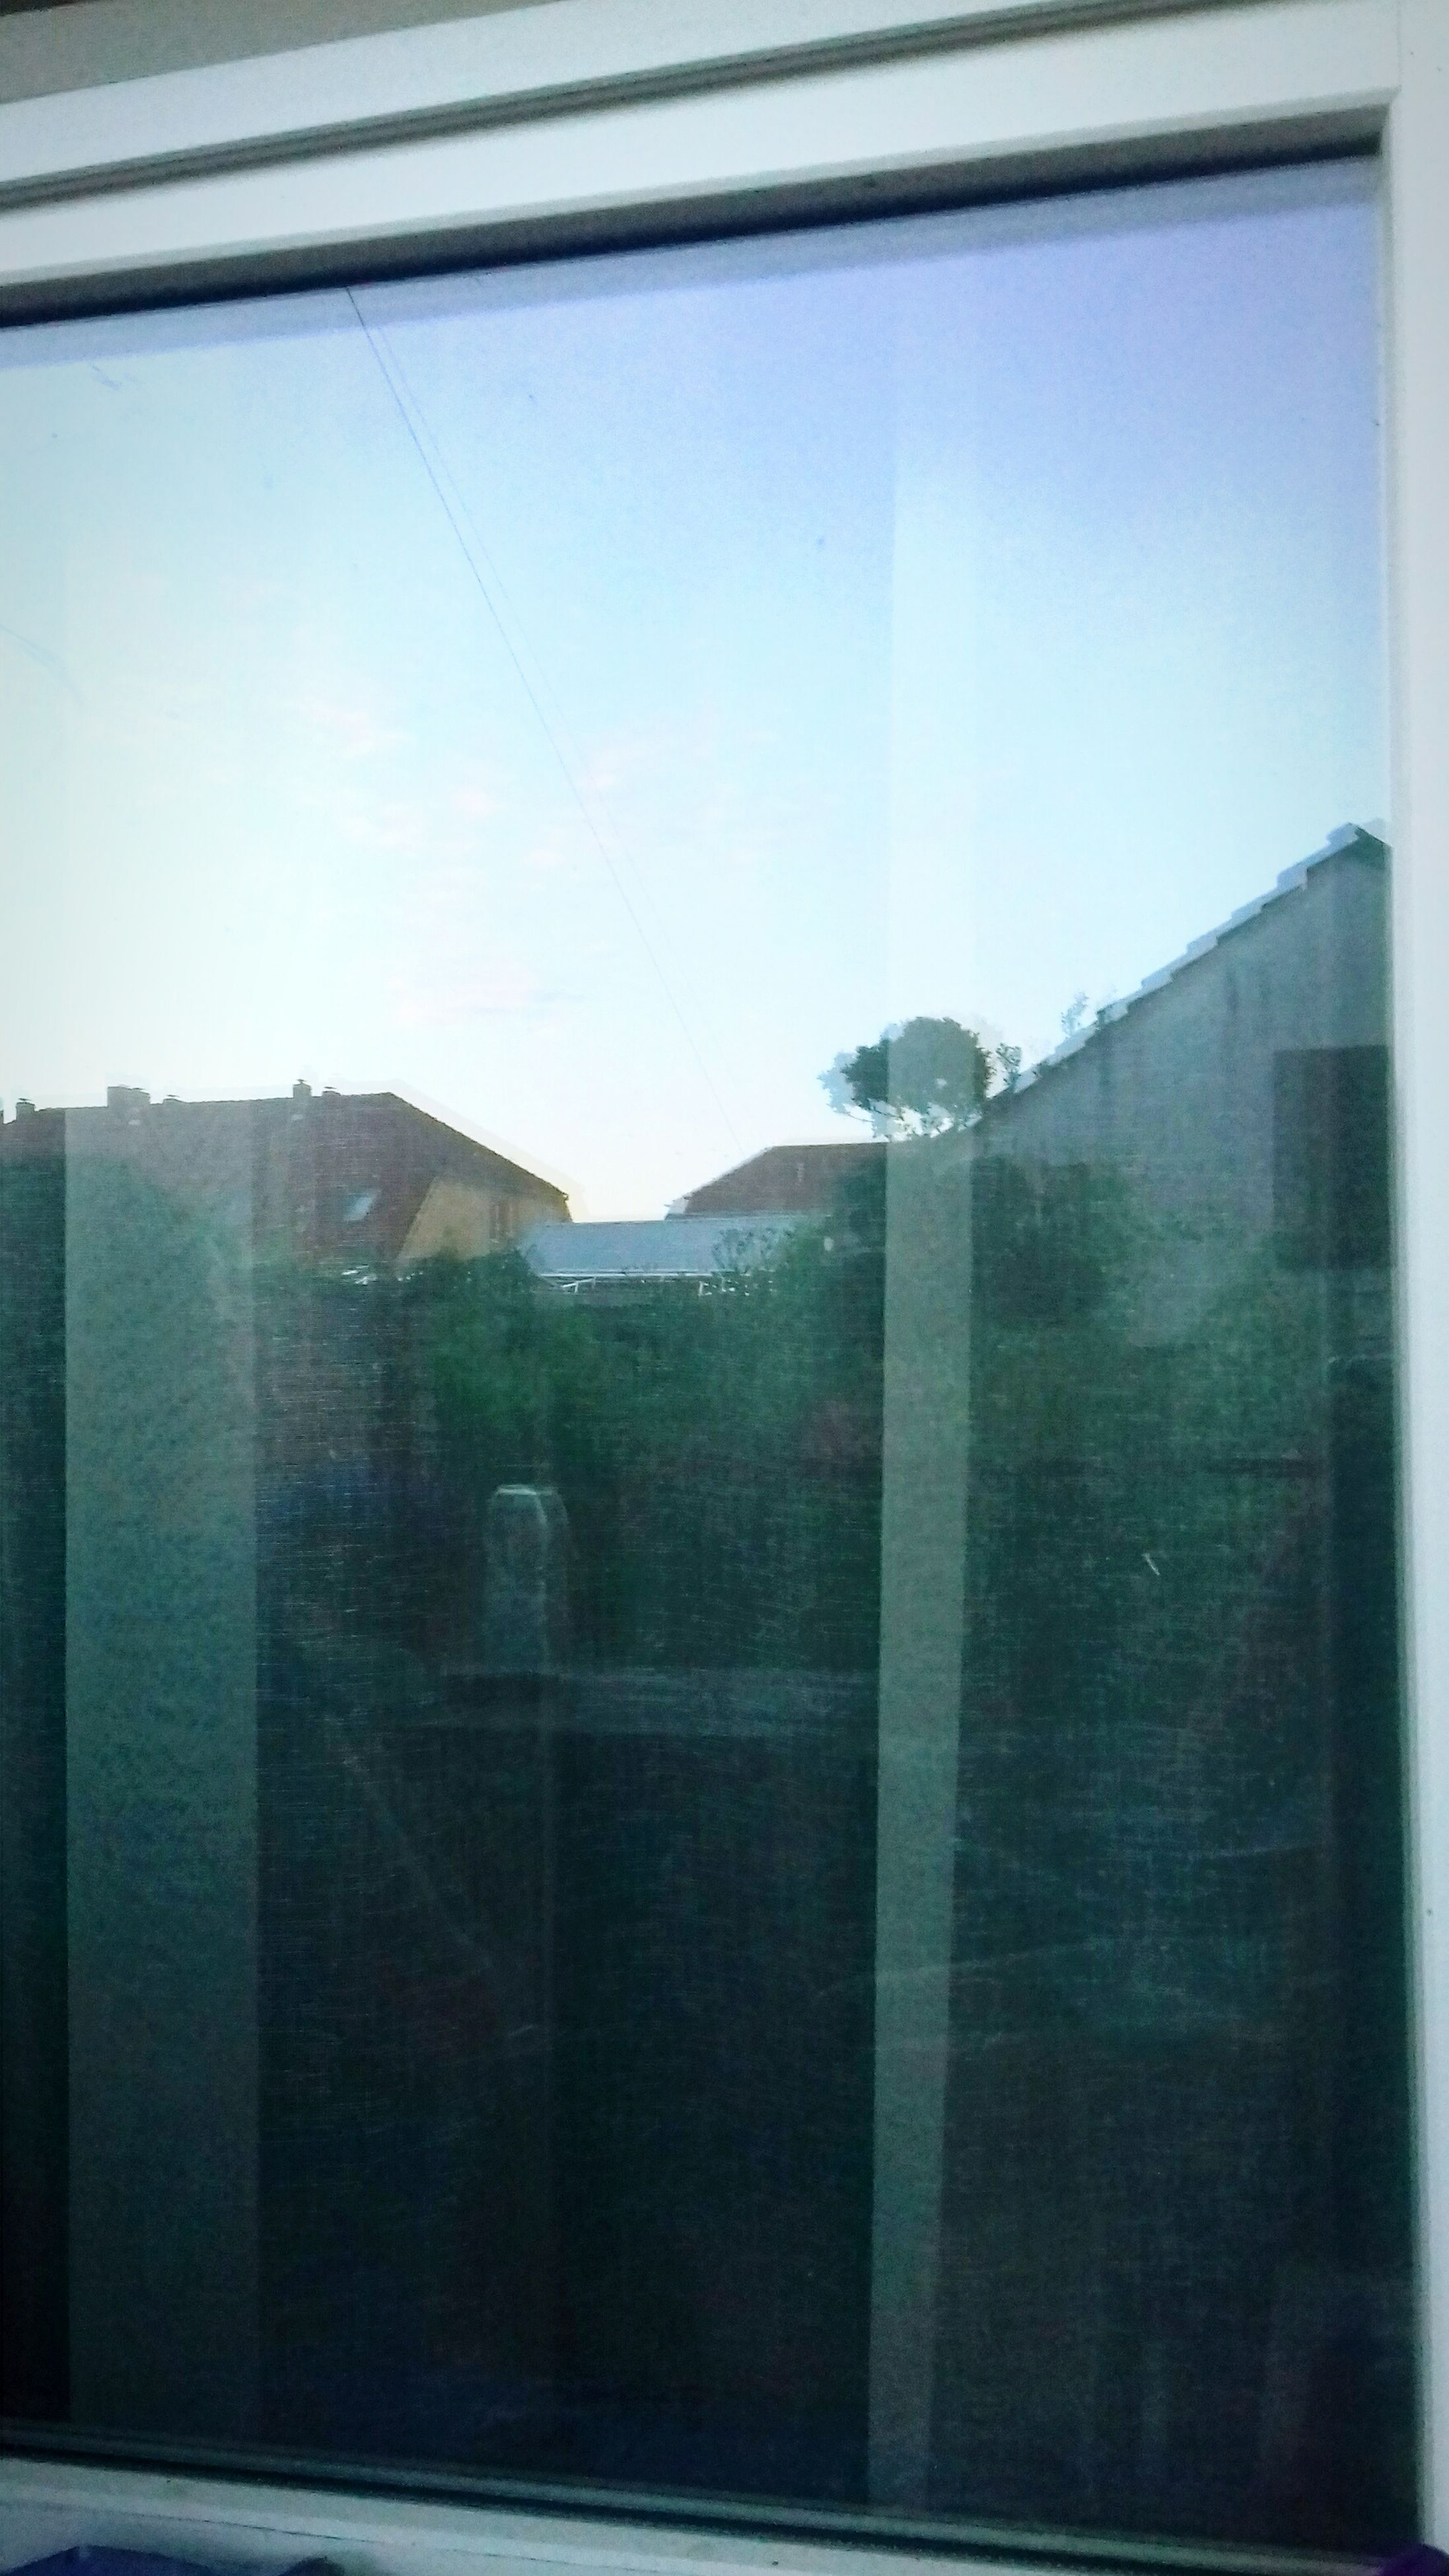 window, glass - material, reflection, building exterior, architecture, built structure, no people, day, sky, outdoors, city